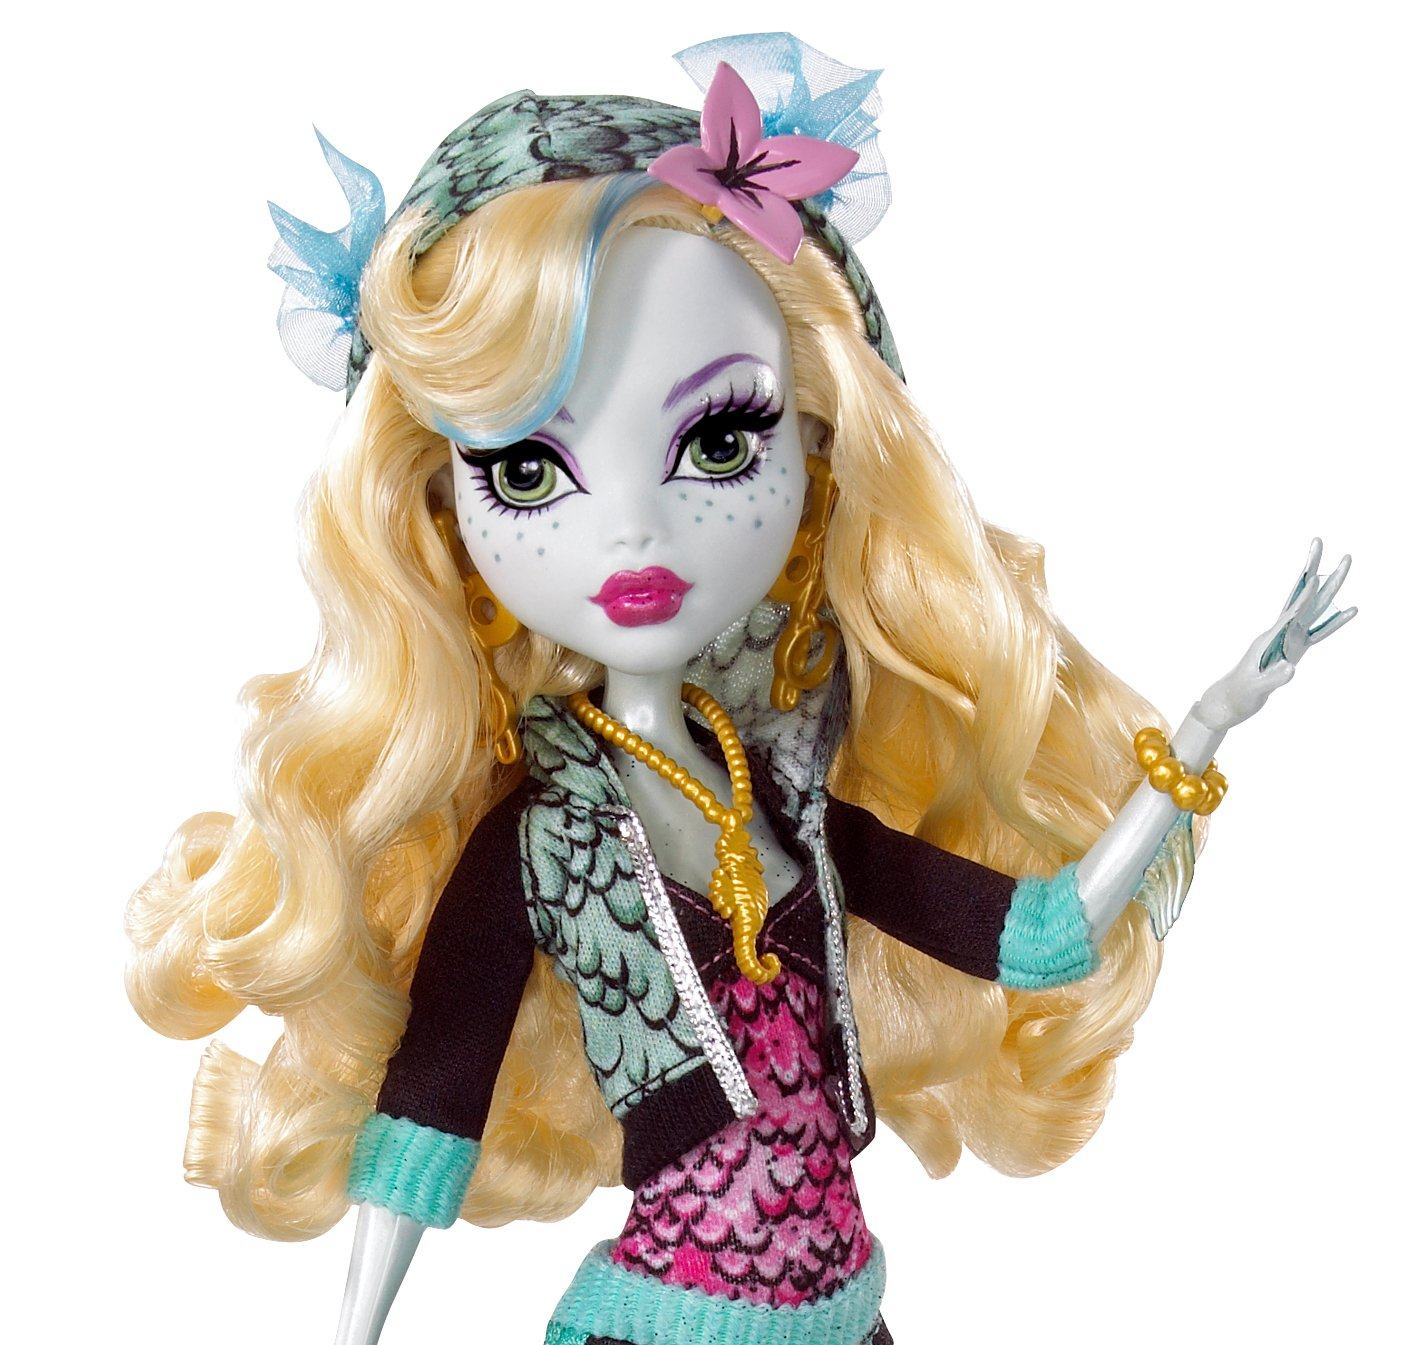 Monster High Lagoona Blue Dolls High Lagoona Blue Doll And